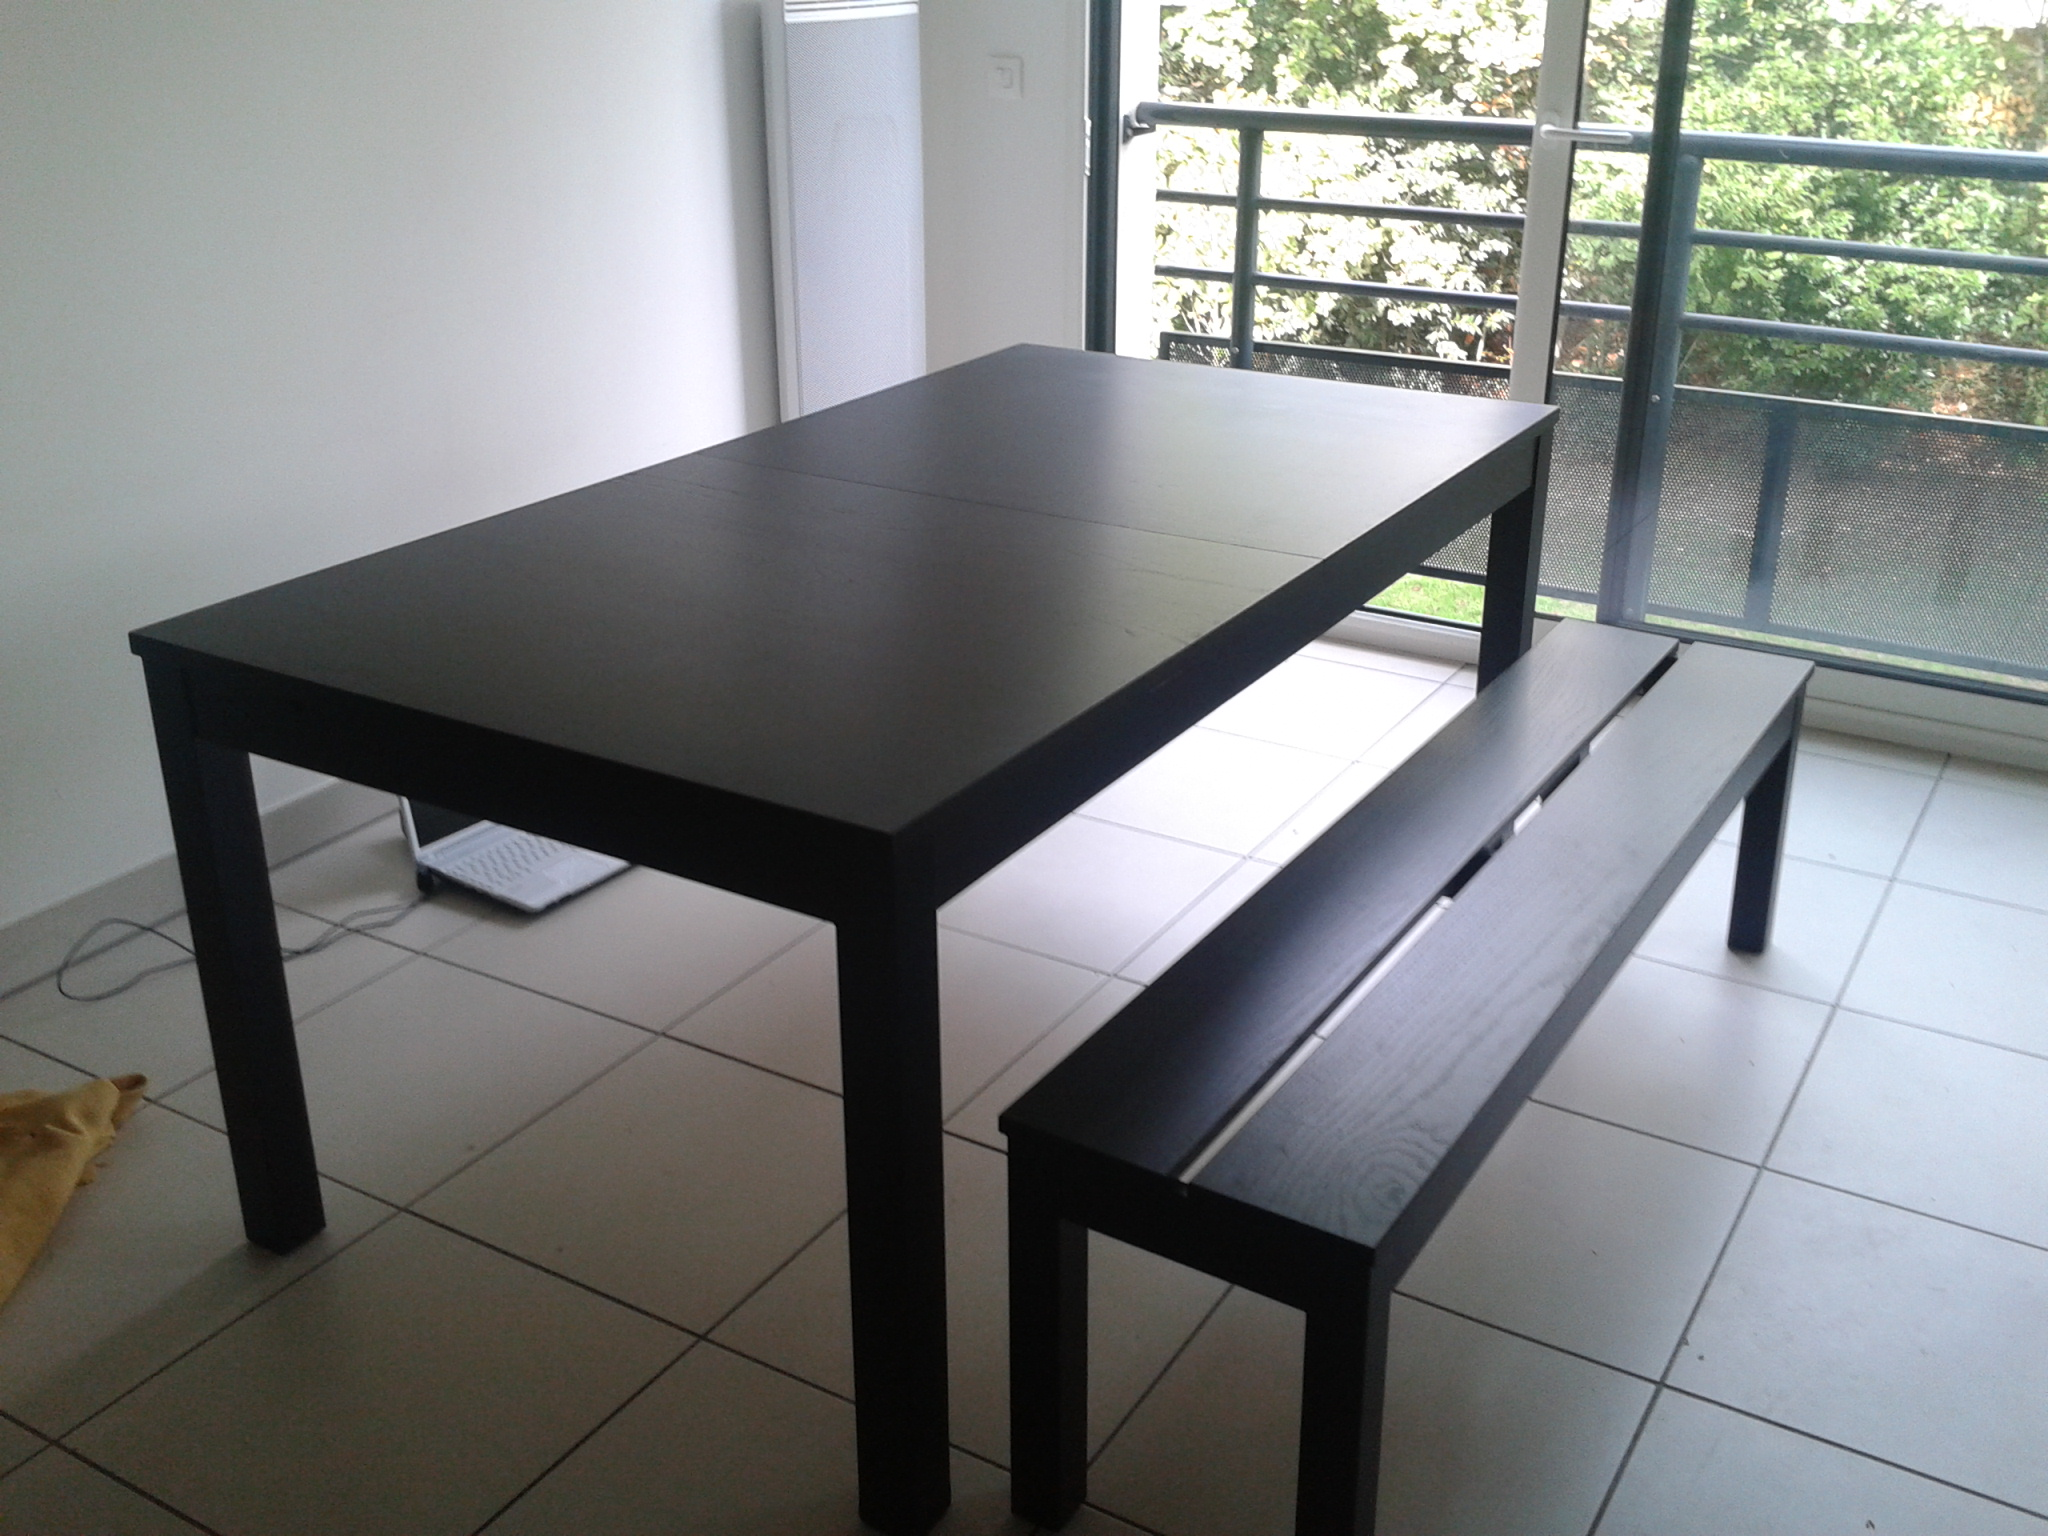 Table avec banc for Table cuisine banc